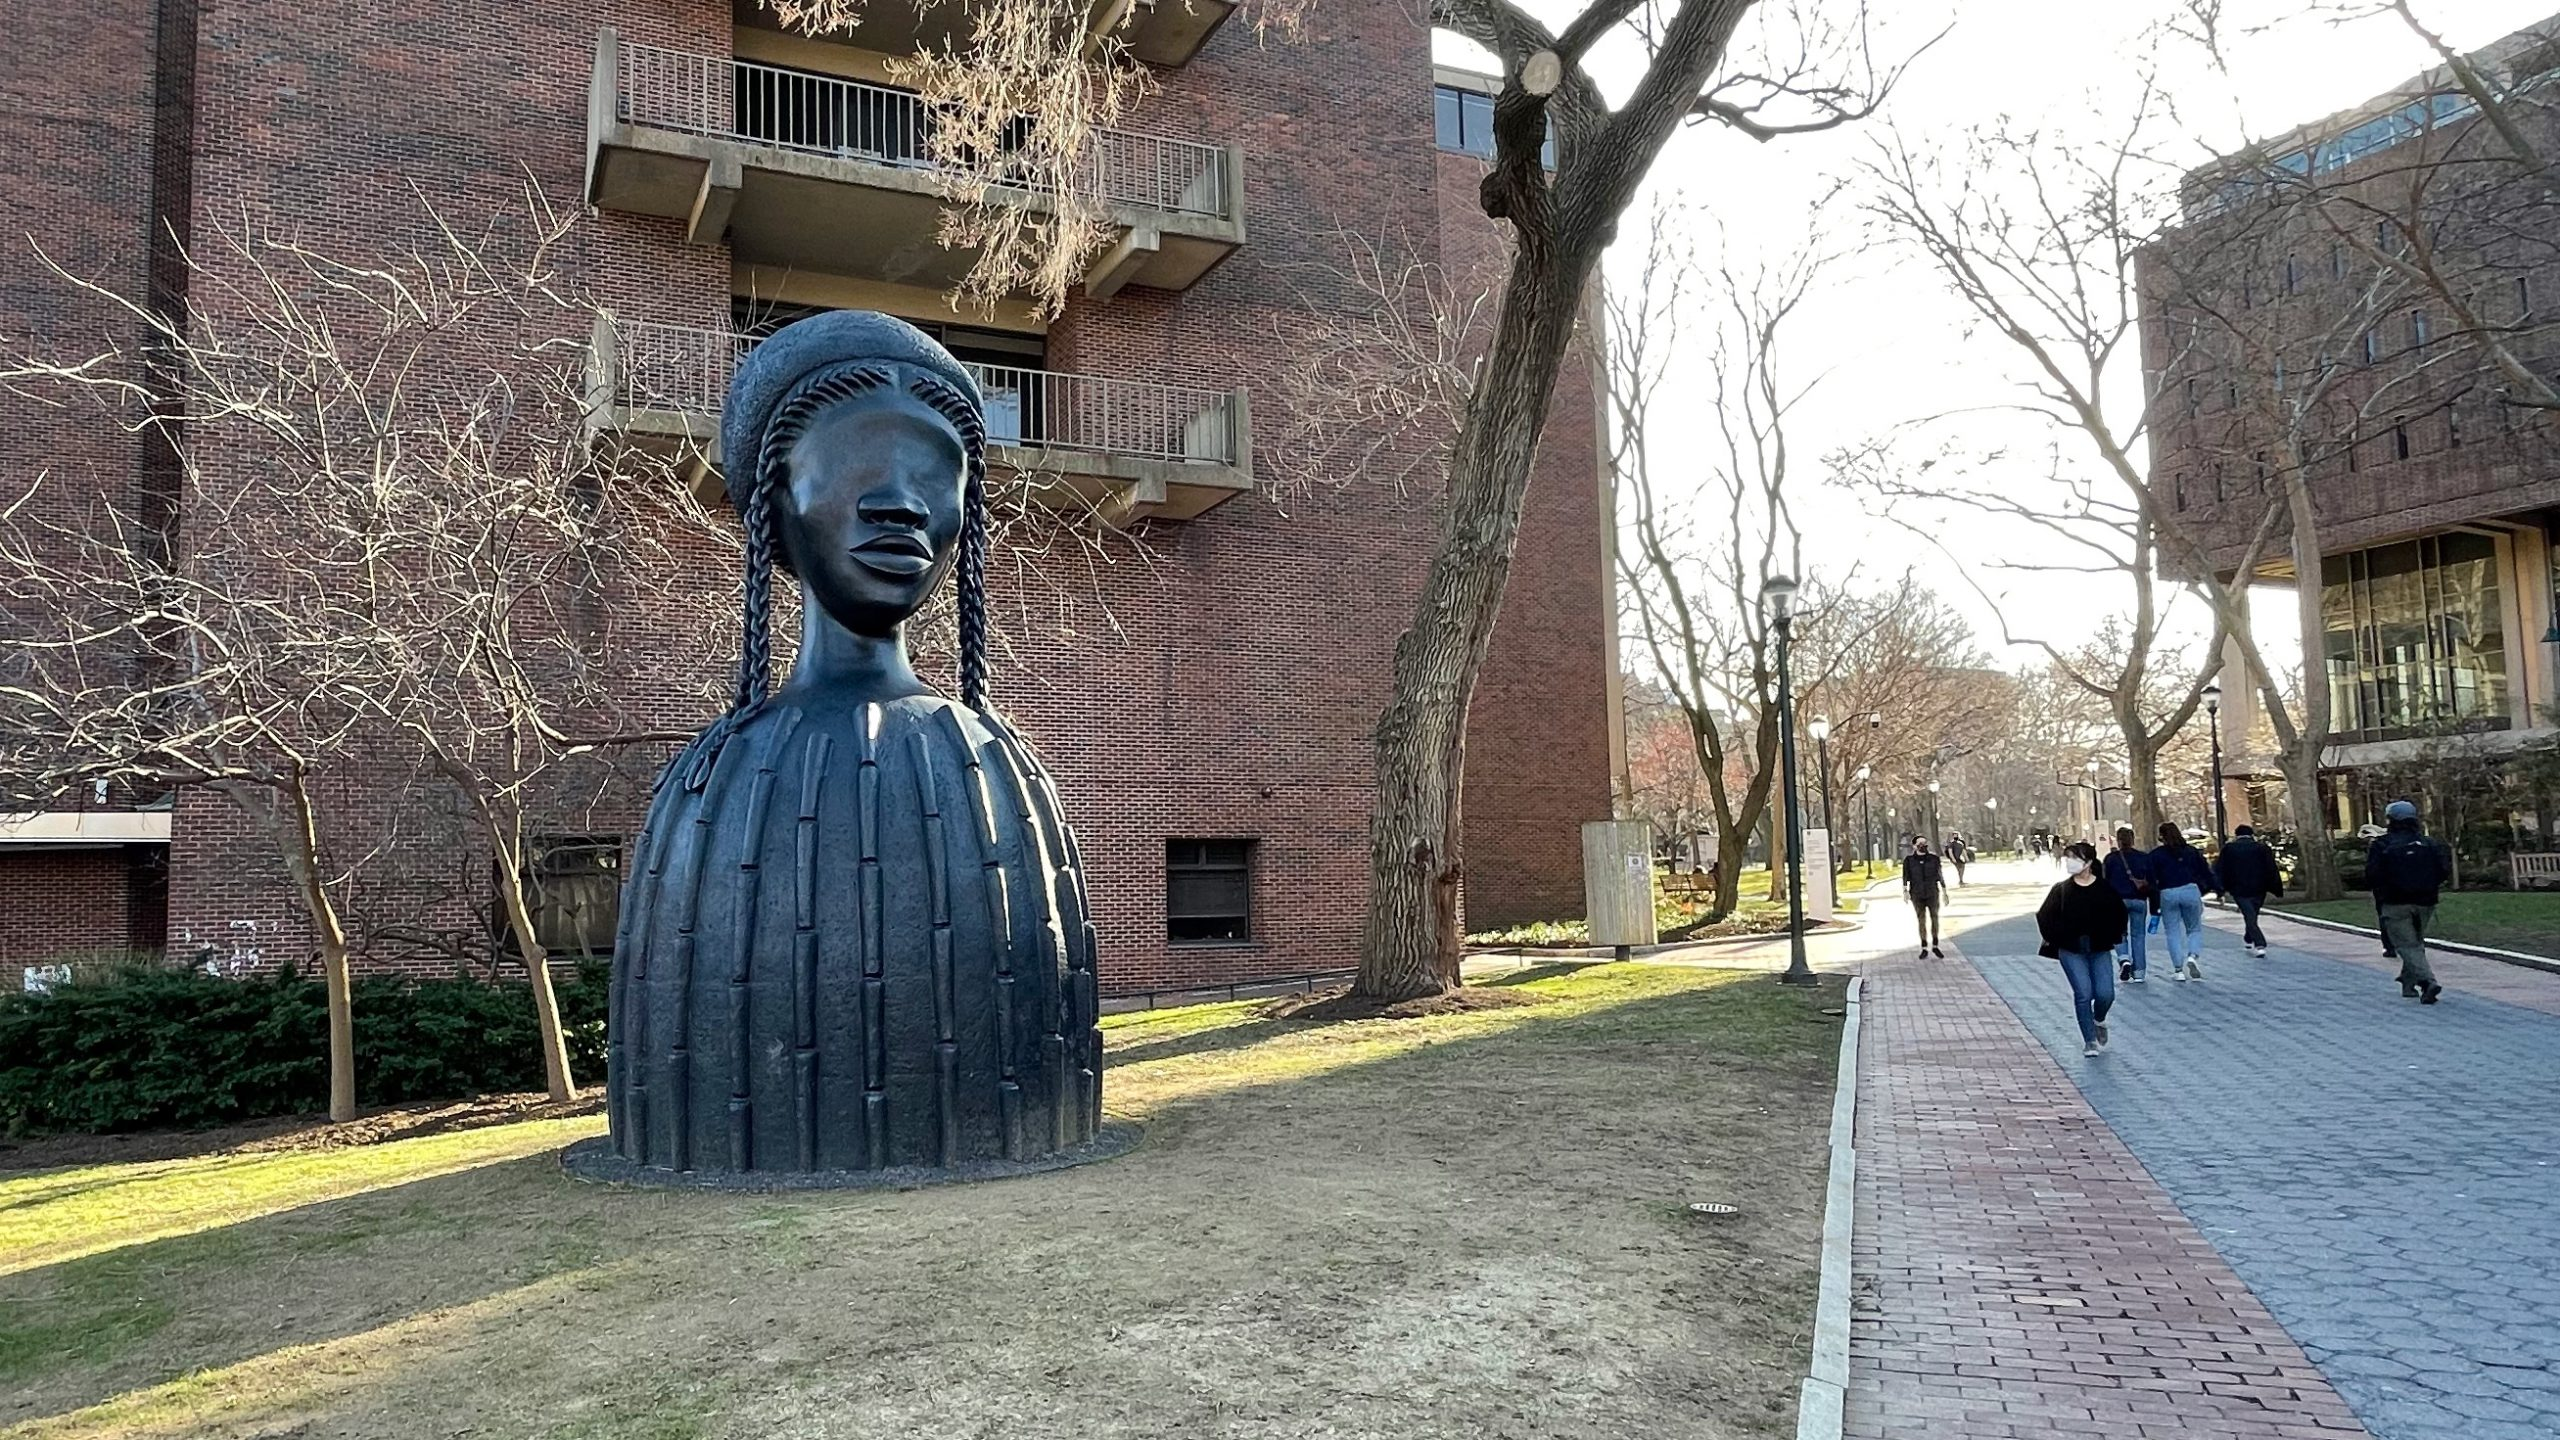 Simone Leigh's Brick House sculpture on Penn's campus with students walking nearby